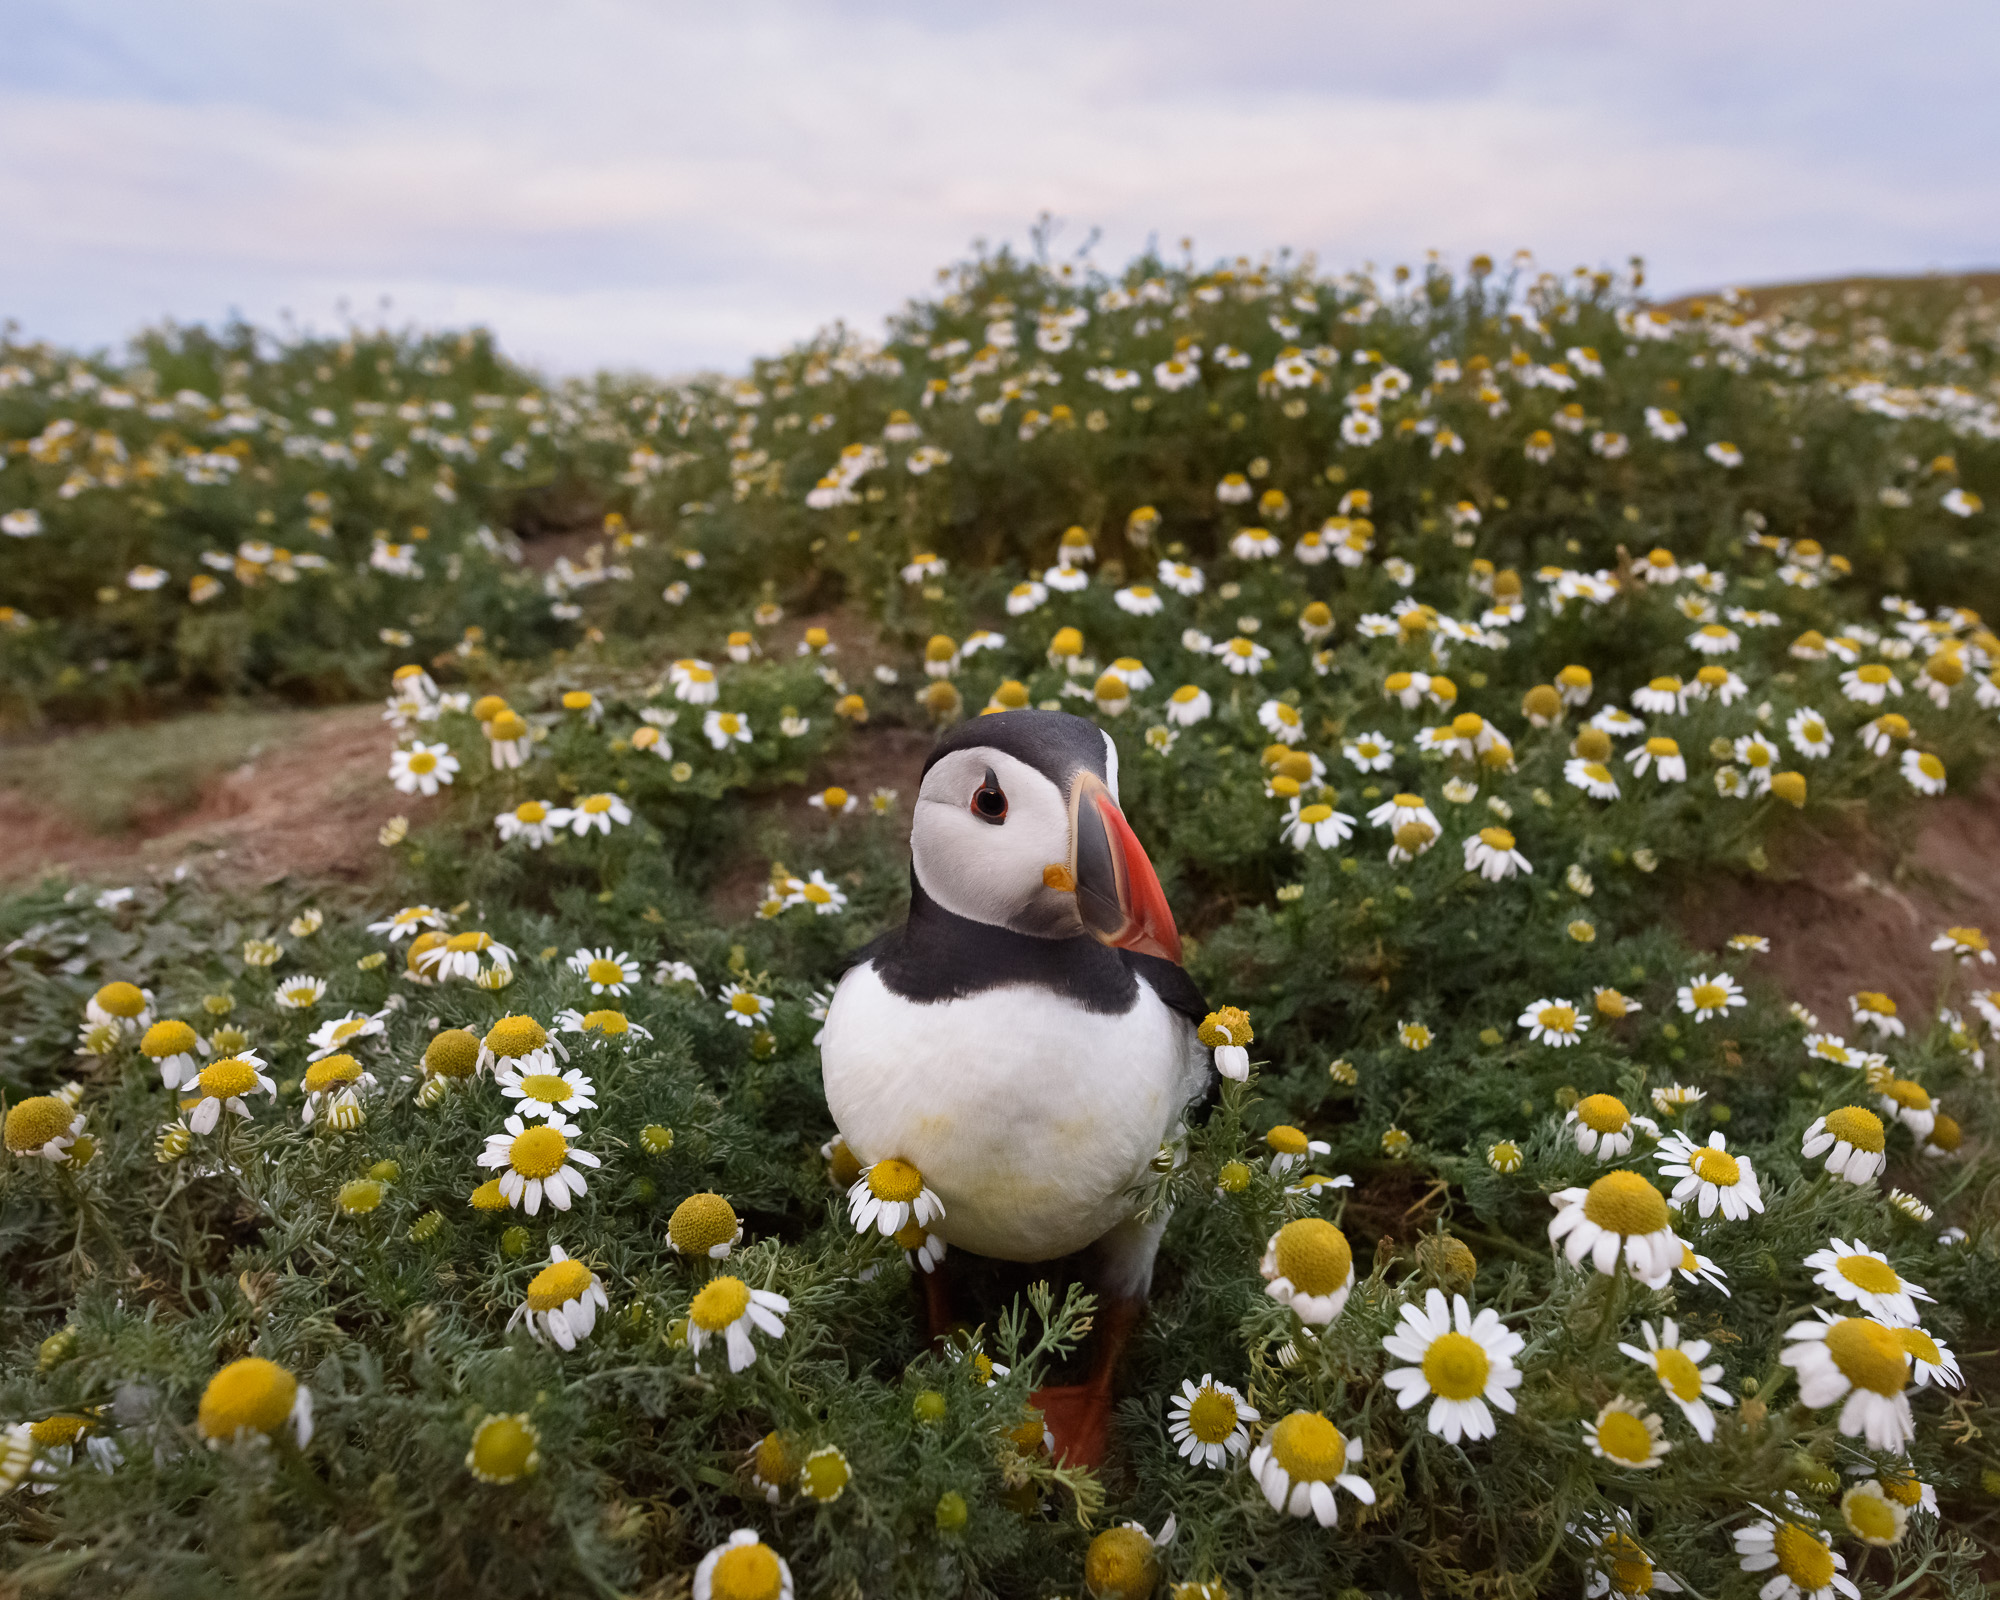 Puffin in mayweed at sunset. This was taken with the 20mm f/1.8 lens. Moving very gently so as not to alarm the birds, it is possible to get in surprisingly close while staying on the footpath.